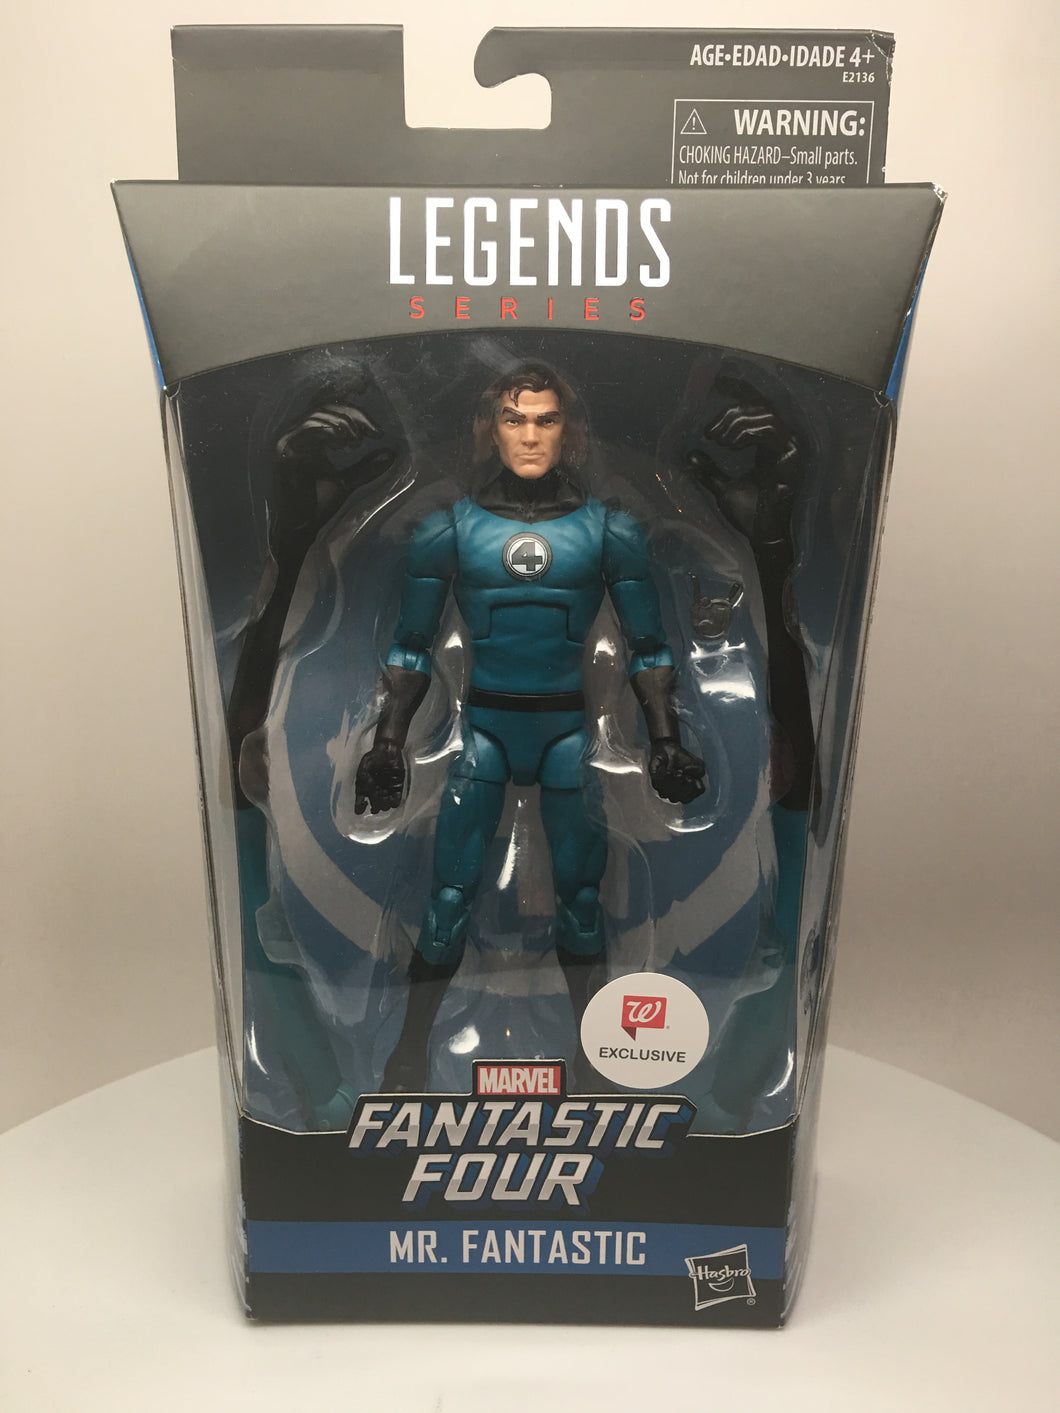 MR. FANTASTIC - Marvel Legends - Walgreens Exclusive.